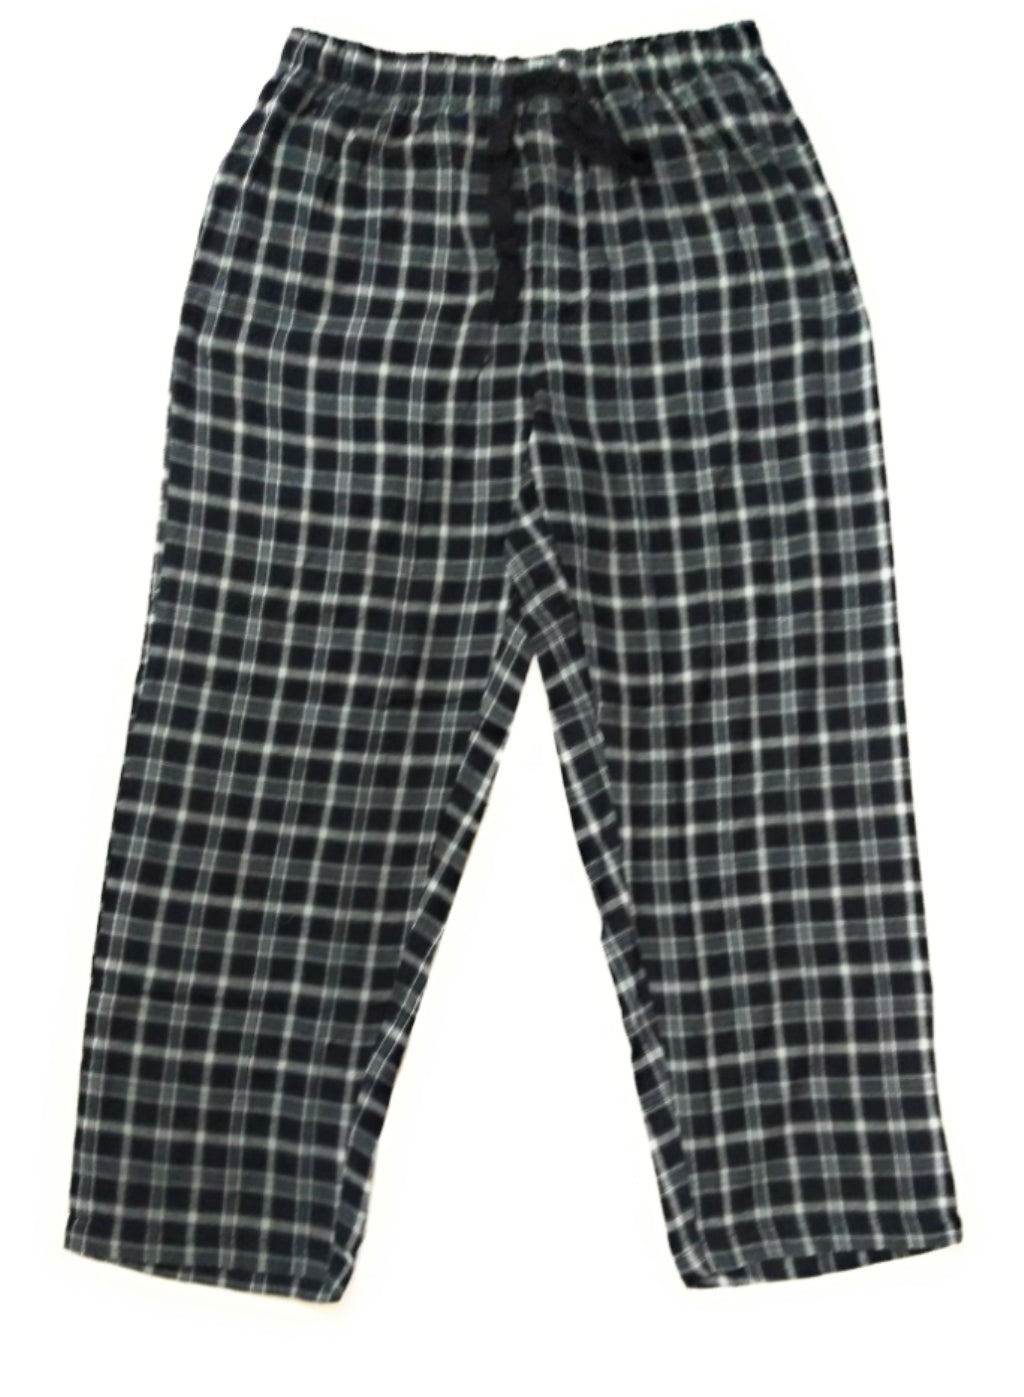 100% Cotton Black and Cream Checked Pyjama Sleepwear Night Wear